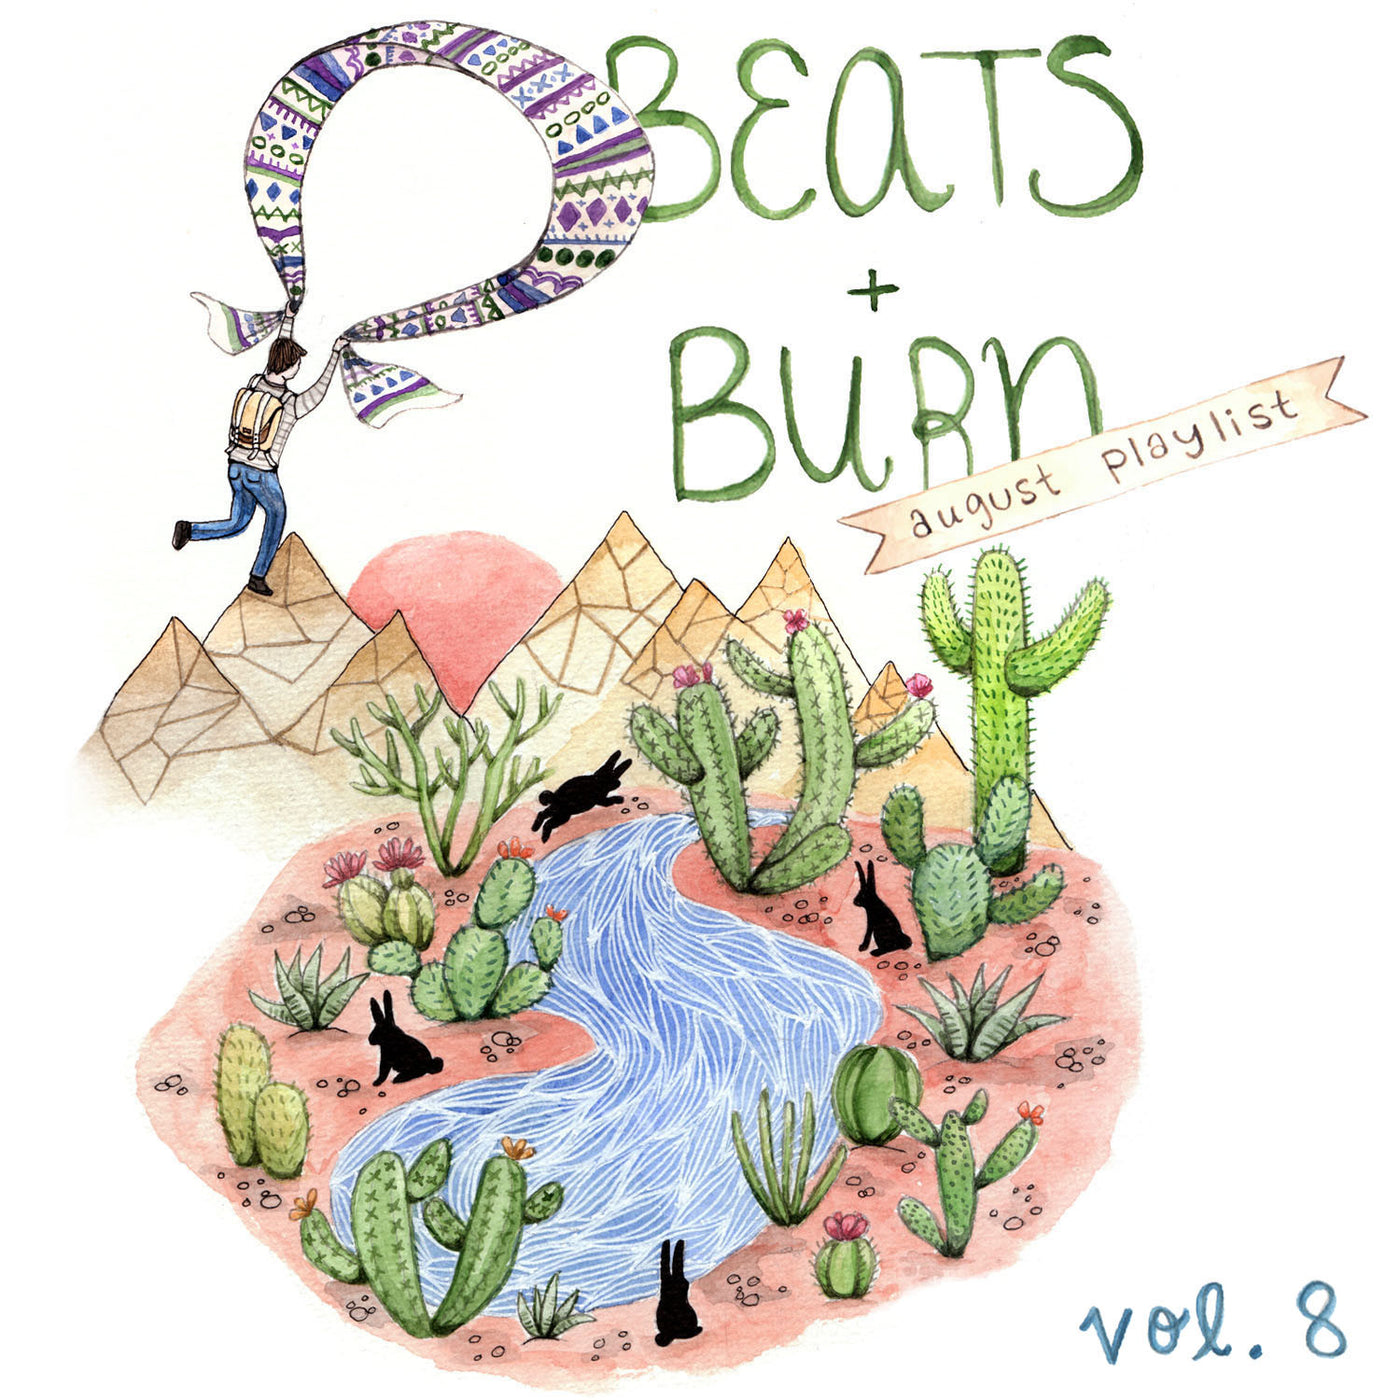 Beats & Burn Vol. 8 - August Playlist